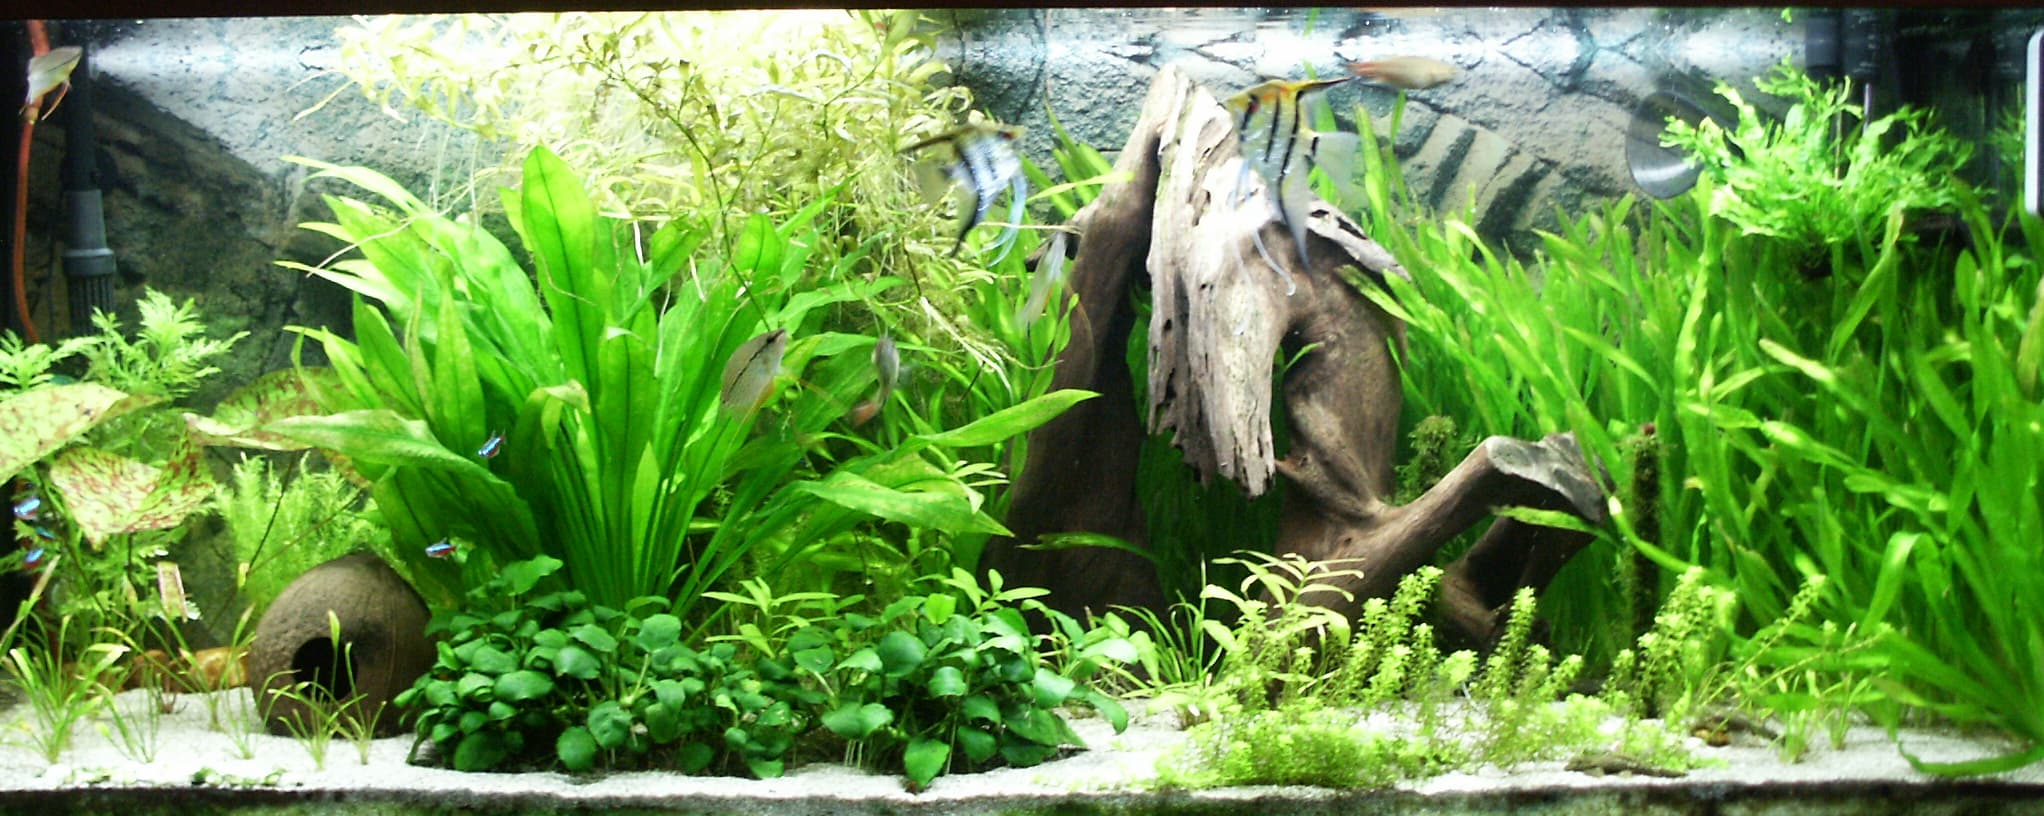 Treating Out the basic needs for an aquarium;